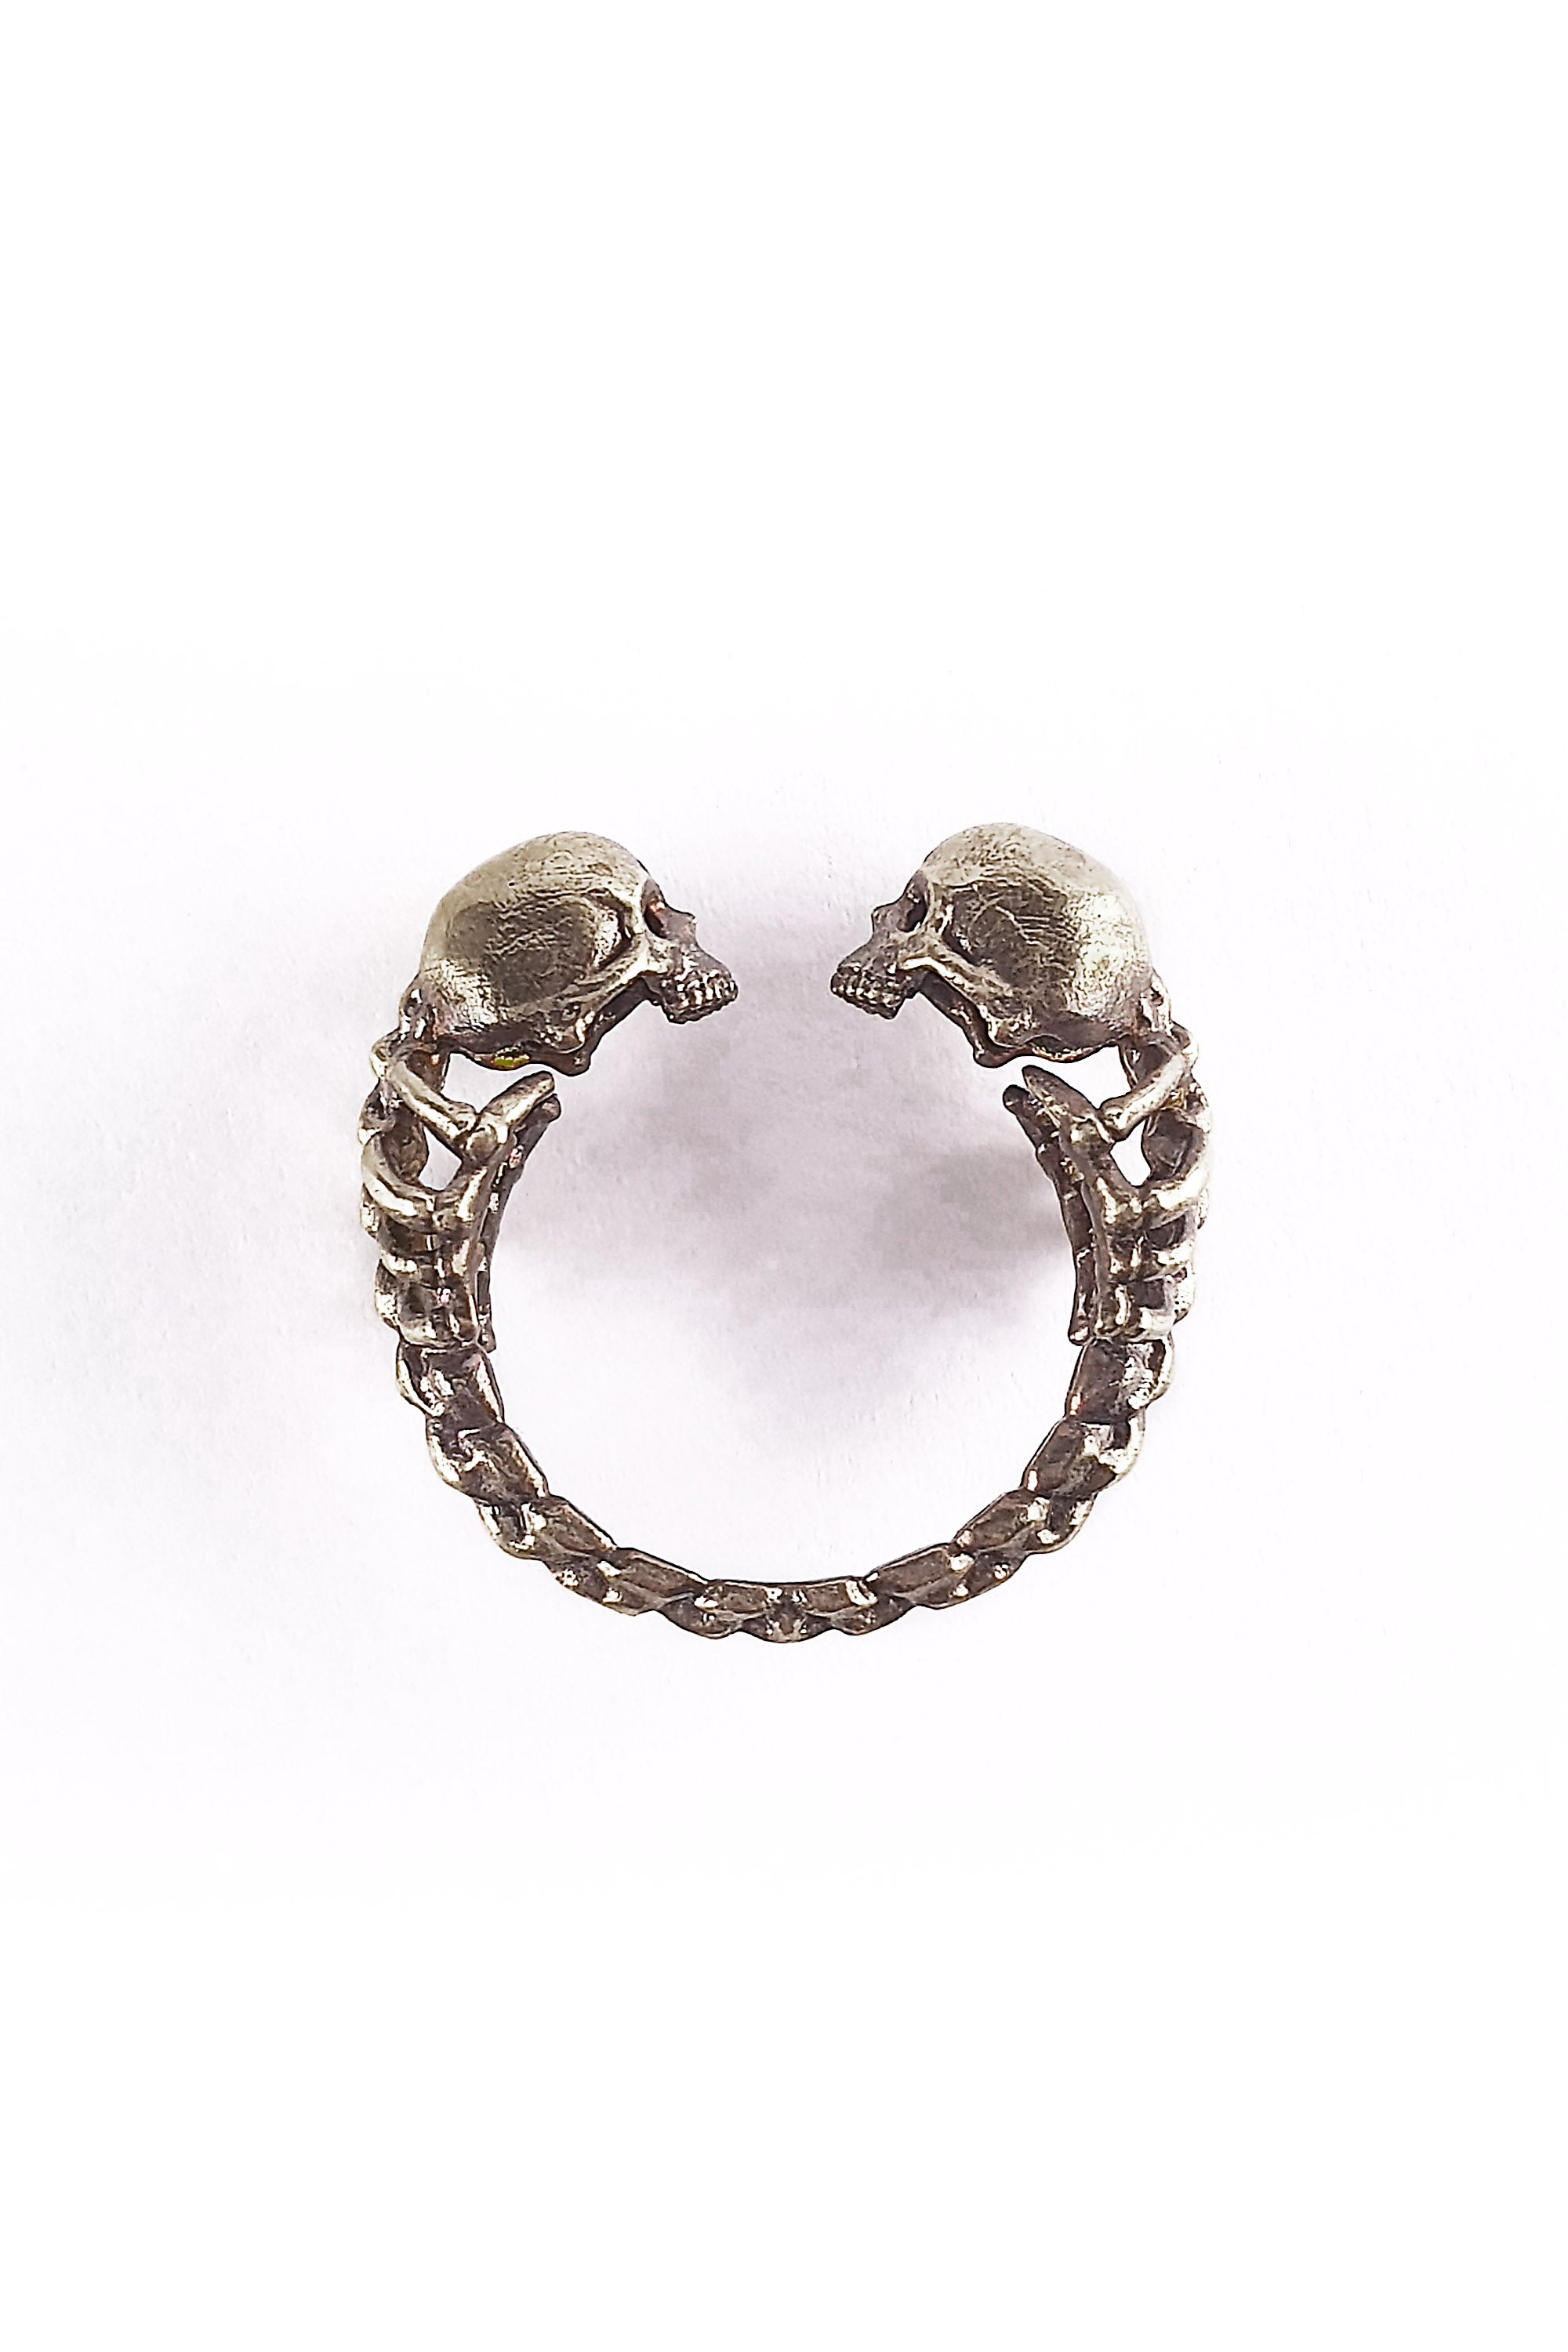 Adjustable Lovers of Valdaro Skull Ring | Engagement Ring | Lovers Ring